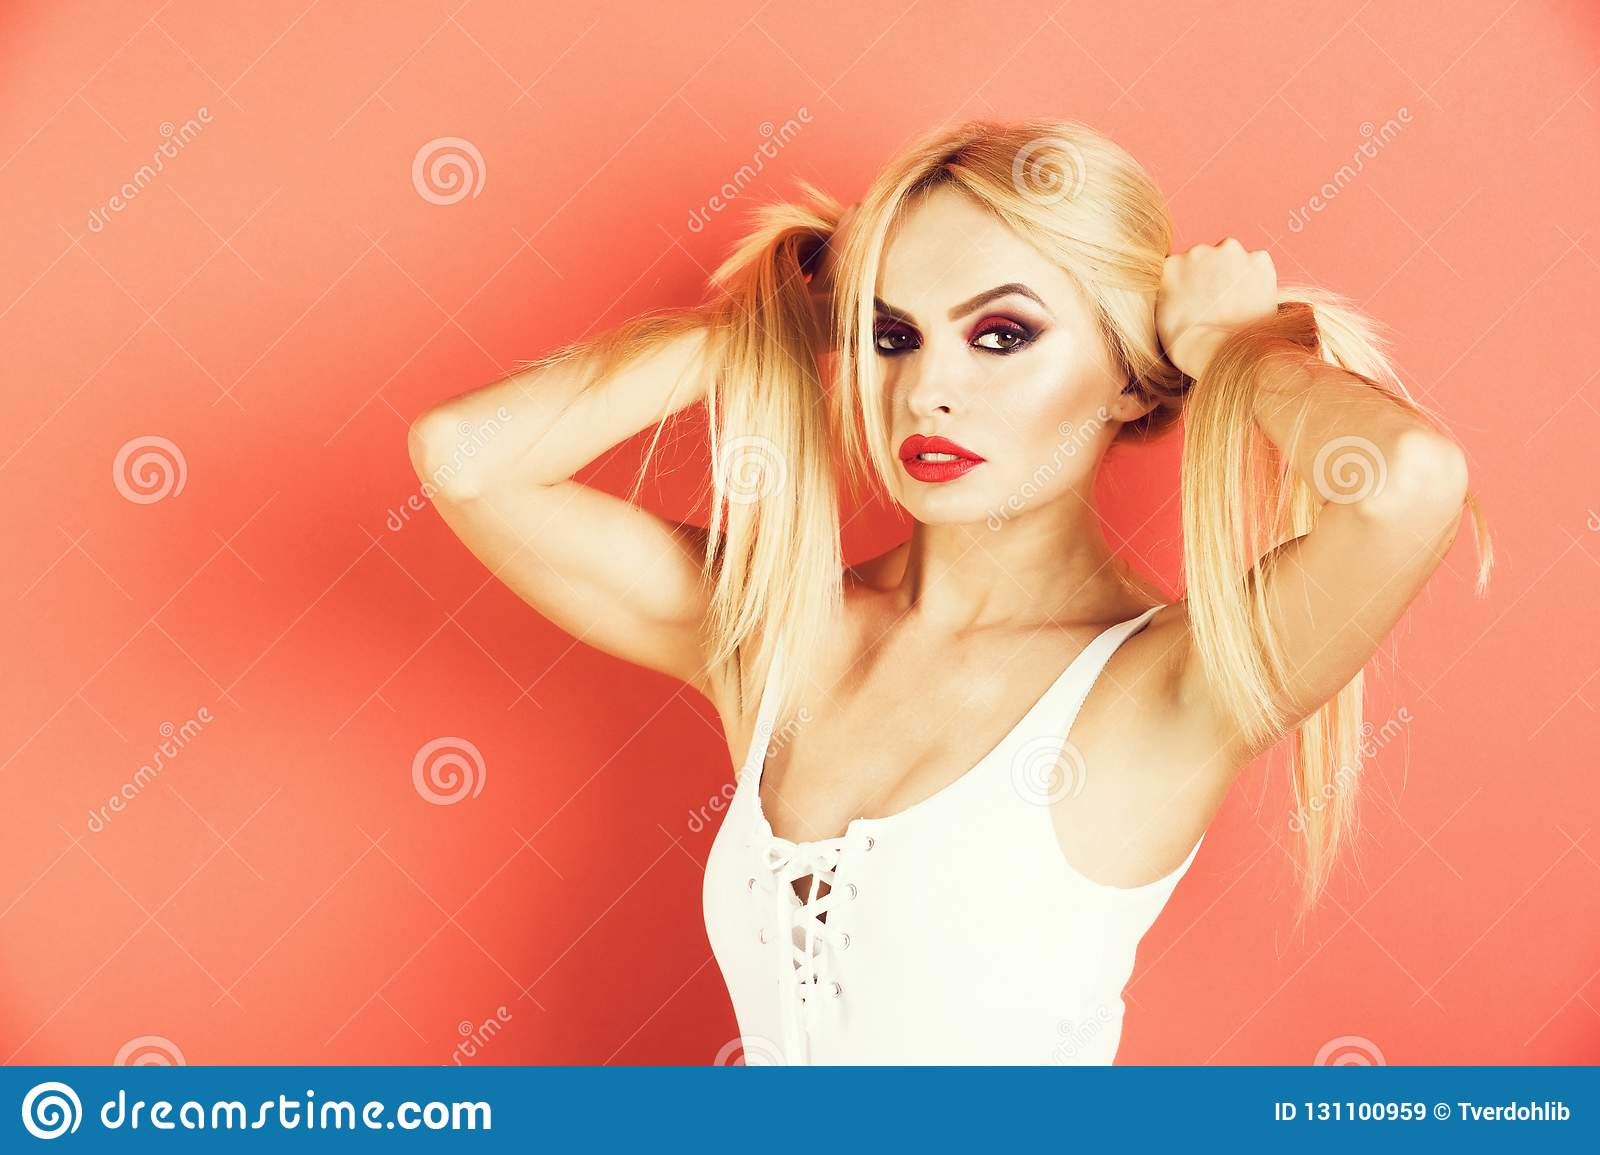 Beautiful woman model or sensual glamour portrait with makeup has red lips color and clean healthy skin face